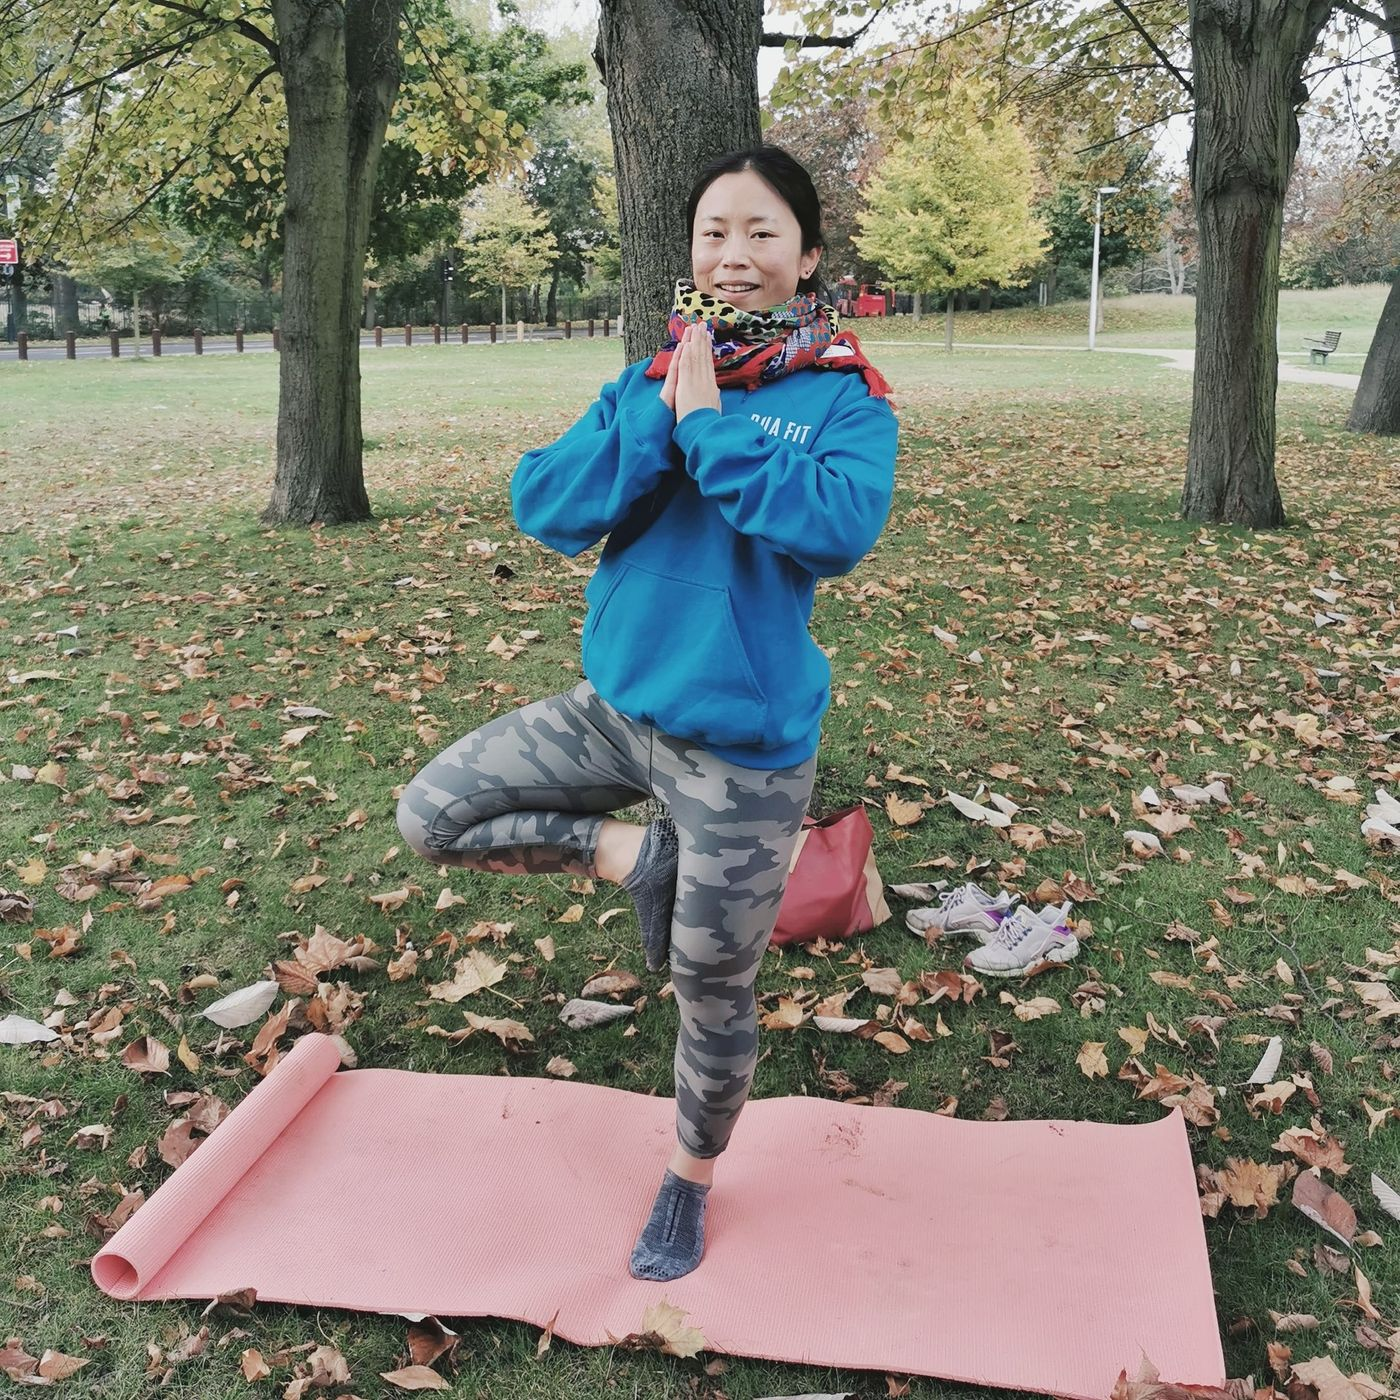 Who's ready for outdoor yoga?  South East Londoners - my class in Kidbrooke will start on Saturday 3 April!! I'm also offering a special discount in April where it's only £7.5 a class.  Book now https://bua.fit/my-classes